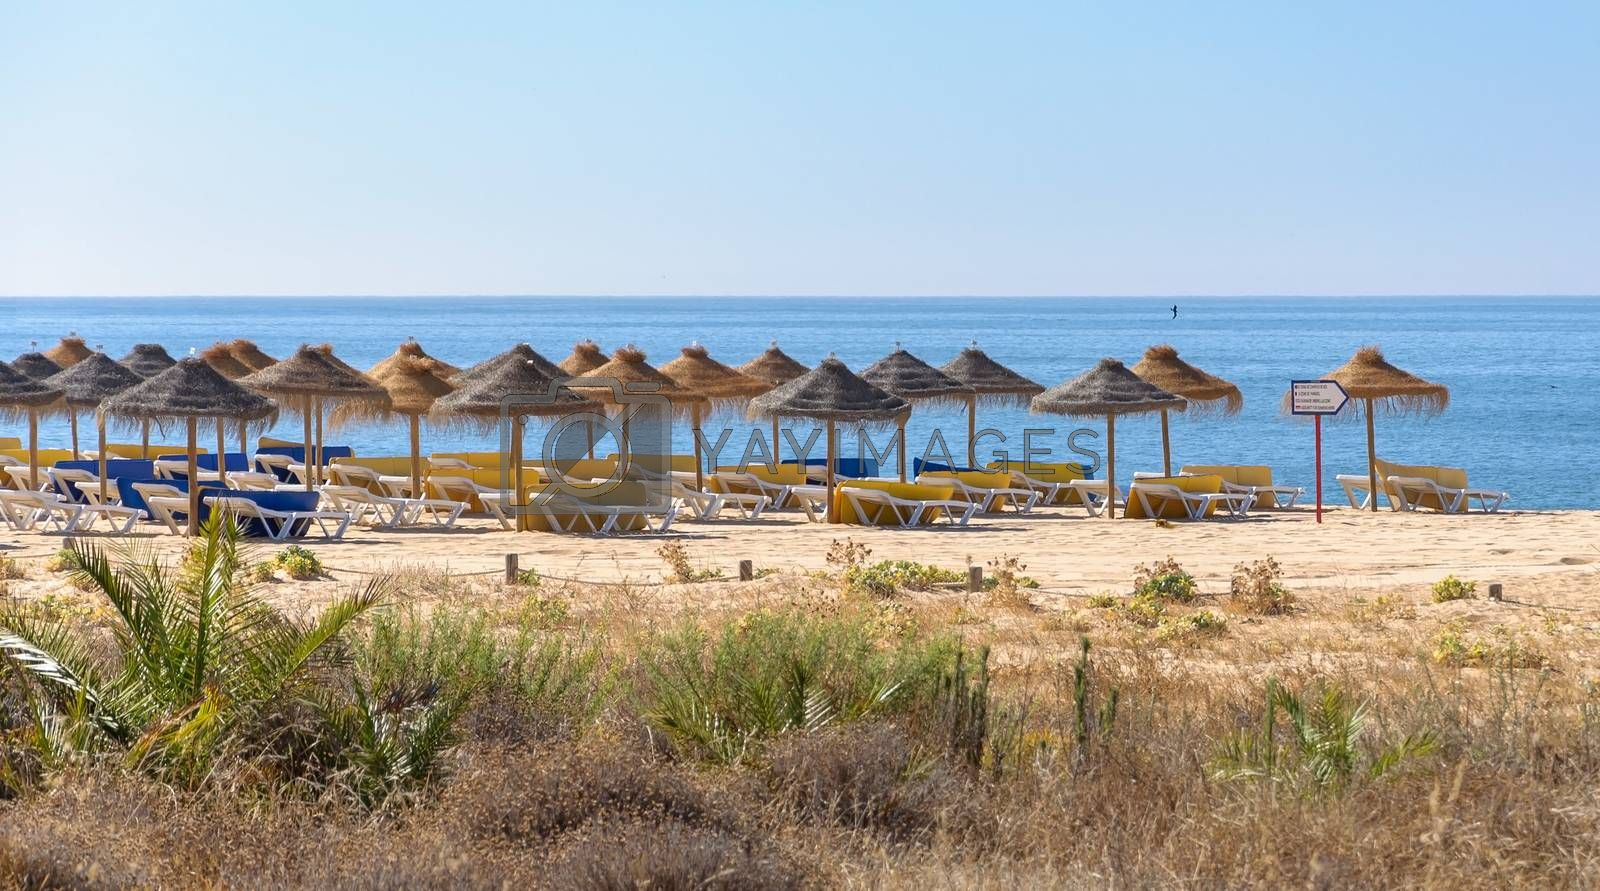 Straw umbrellas and sunbeds on the beach in Vilamoura, Algarve Portugal